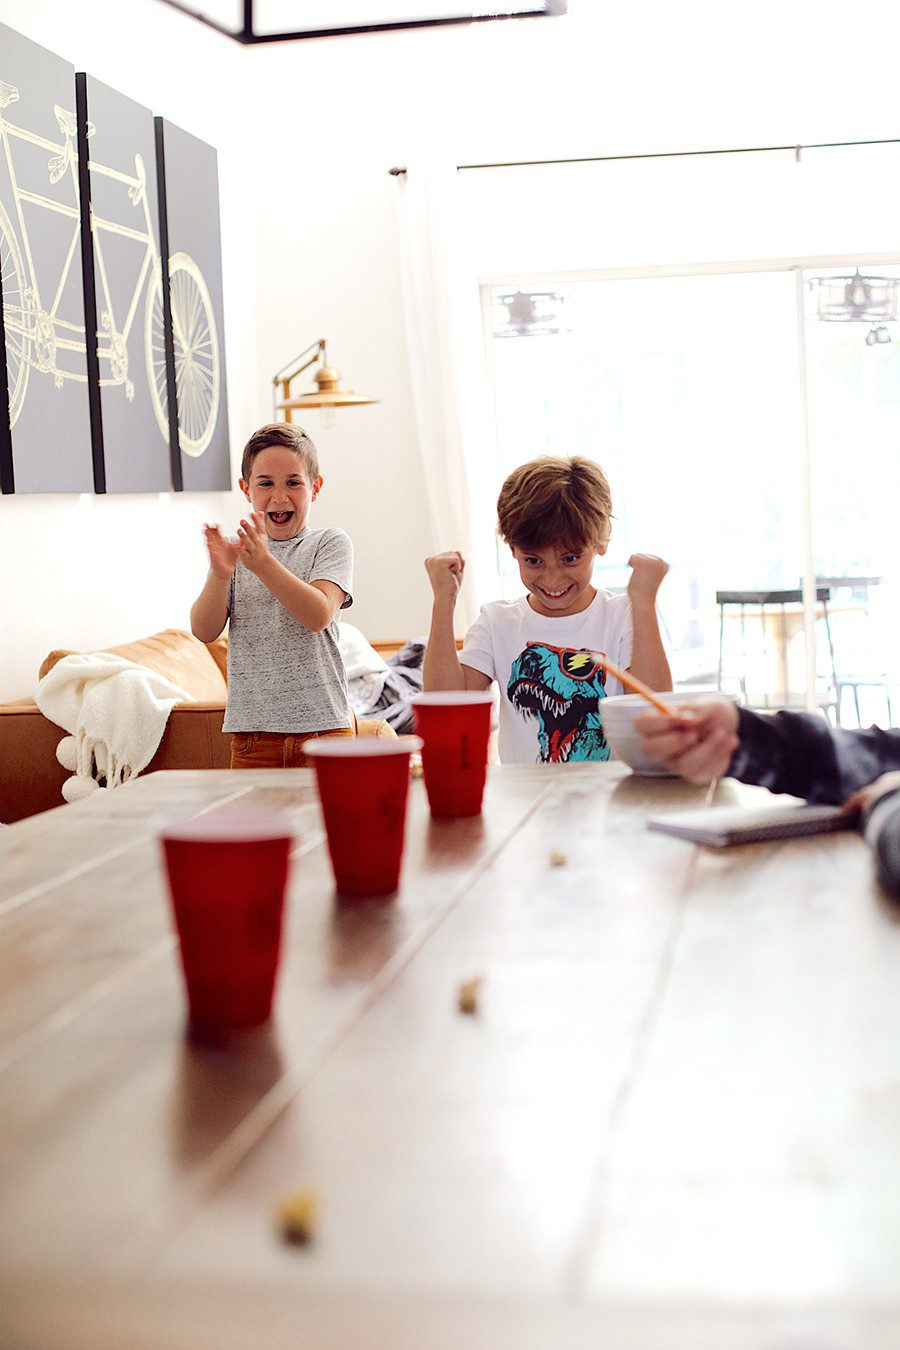 Popcorn toss and more fun popcorn games for family game night! | Family Fun Night by popular Florida lifestyle blog, Fresh Mommy Blog: image of some kids tossing popcorn into red plastic cups.